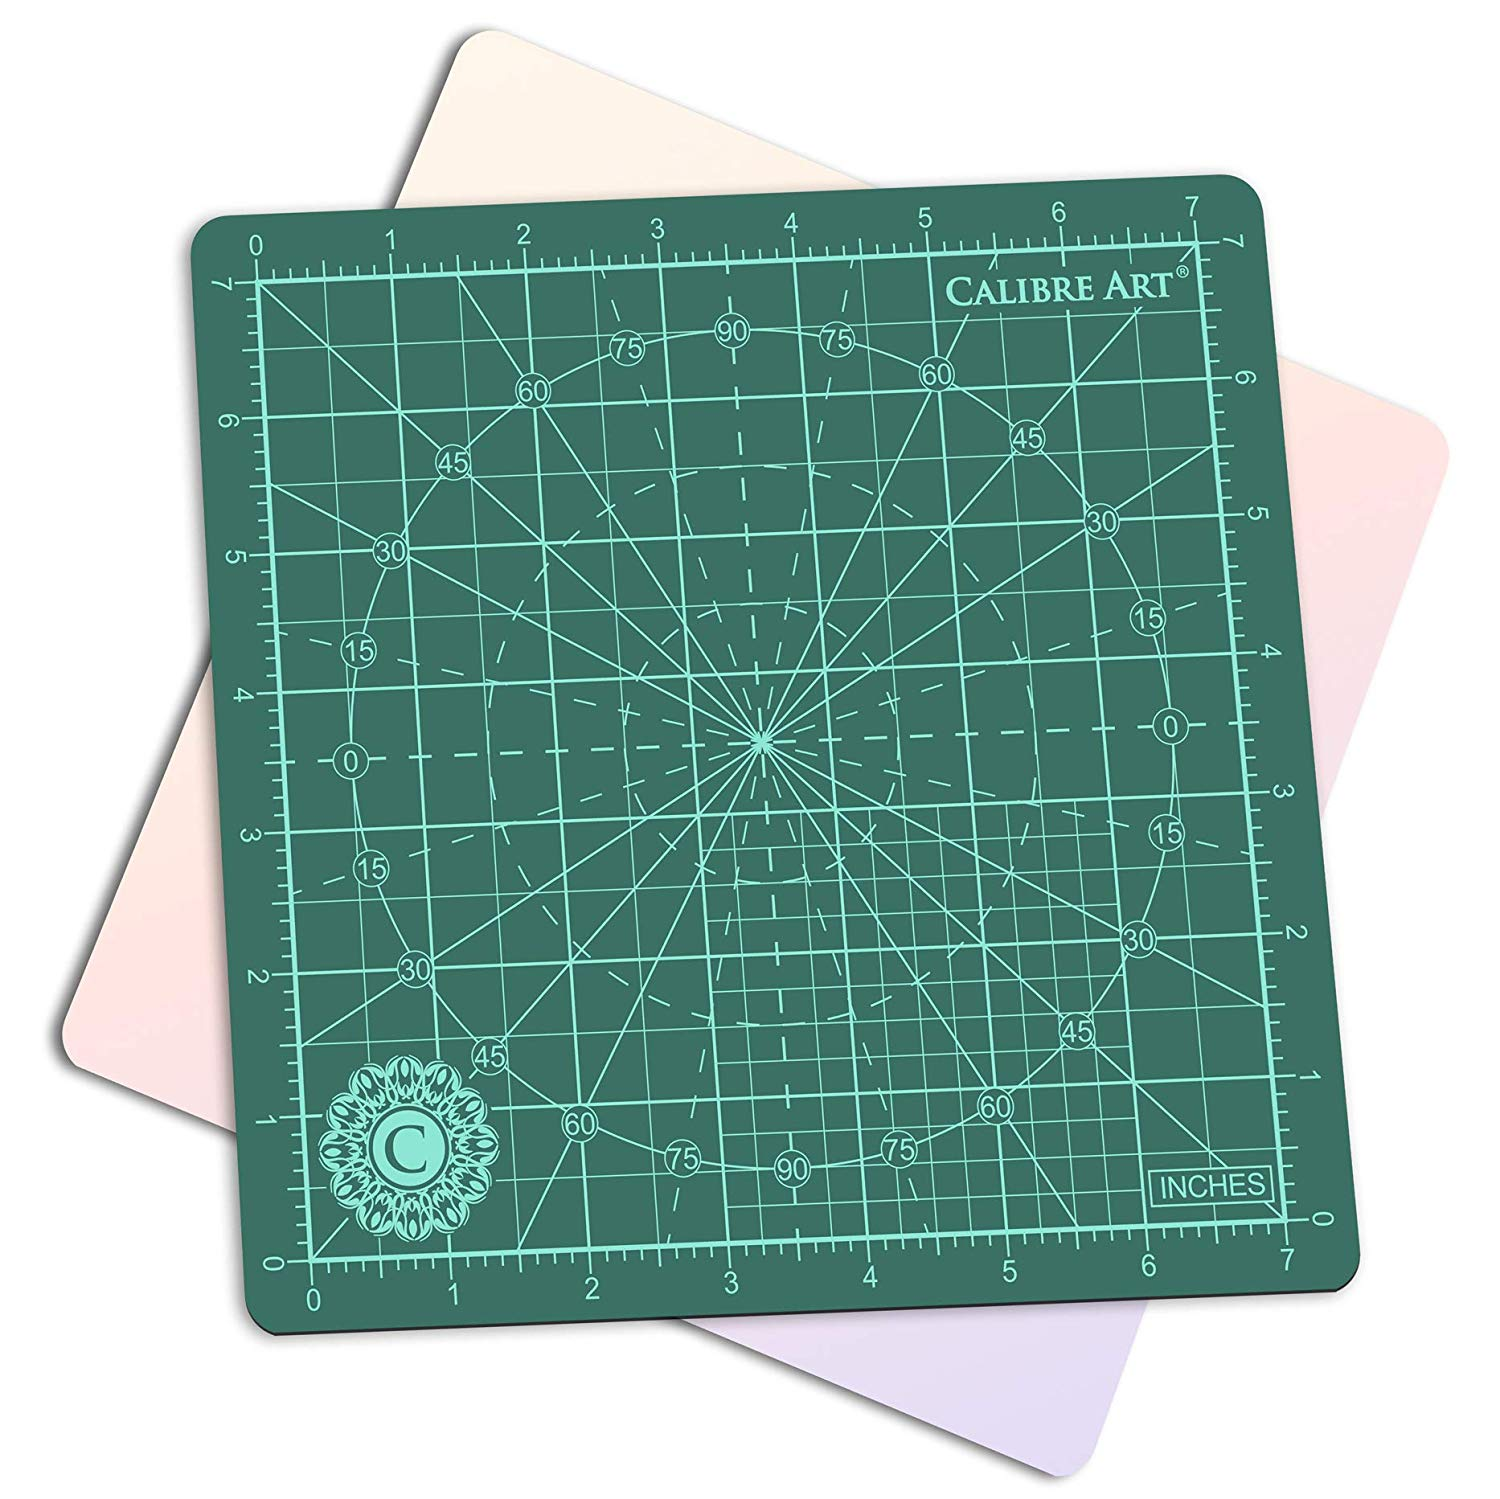 "Calibre Art Rotating Self Healing Cutting Mat, Perfect for Quilting & Art Projects, 8x8 (7"" grids)"